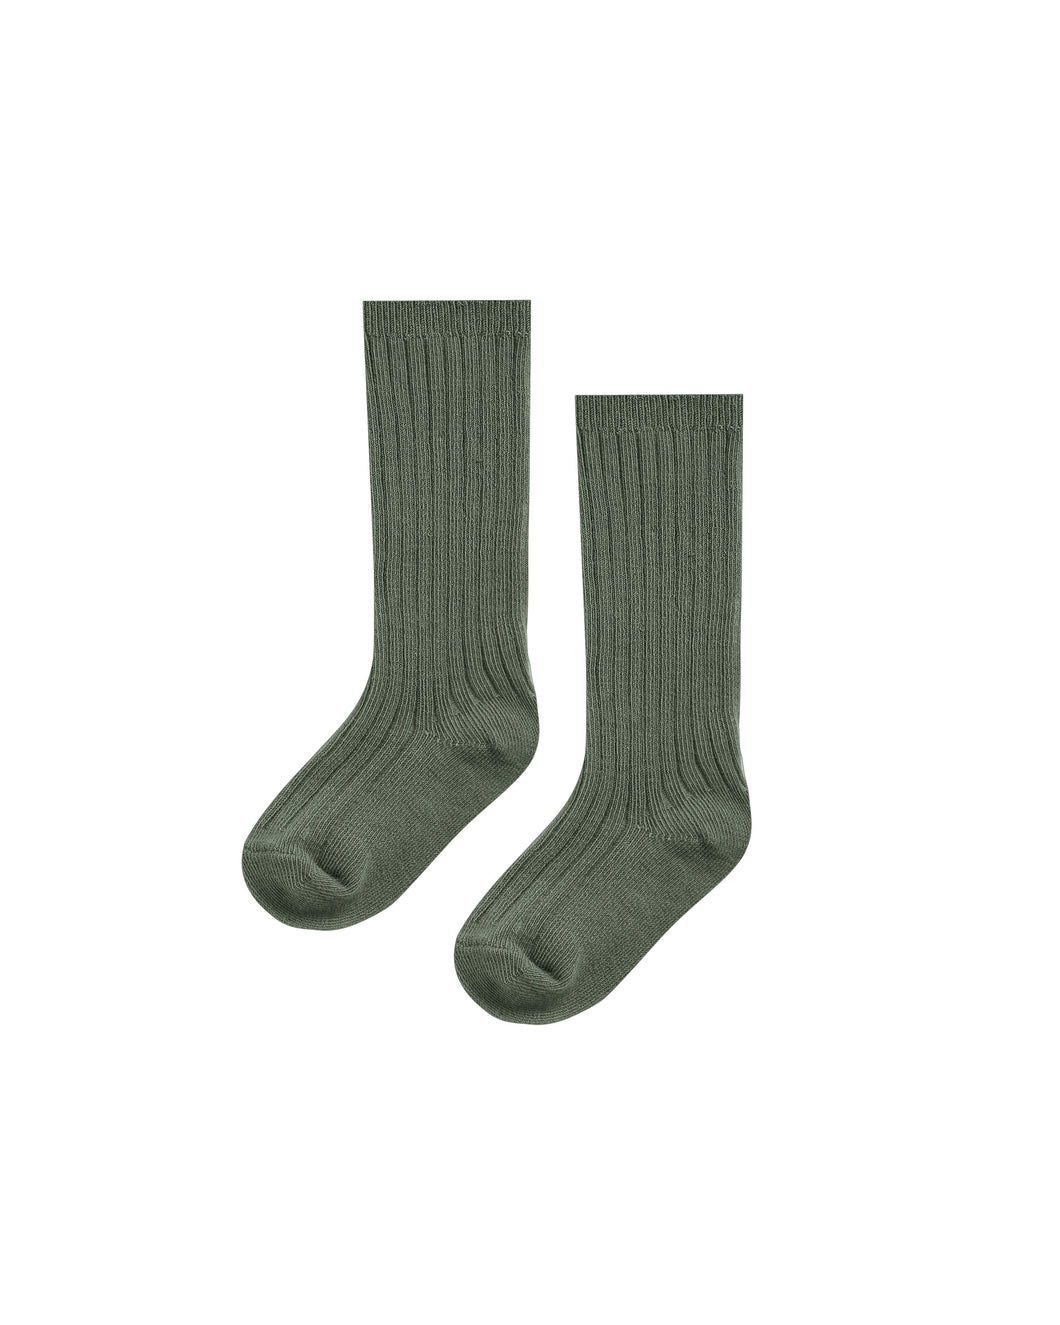 Ribbed knee sock set